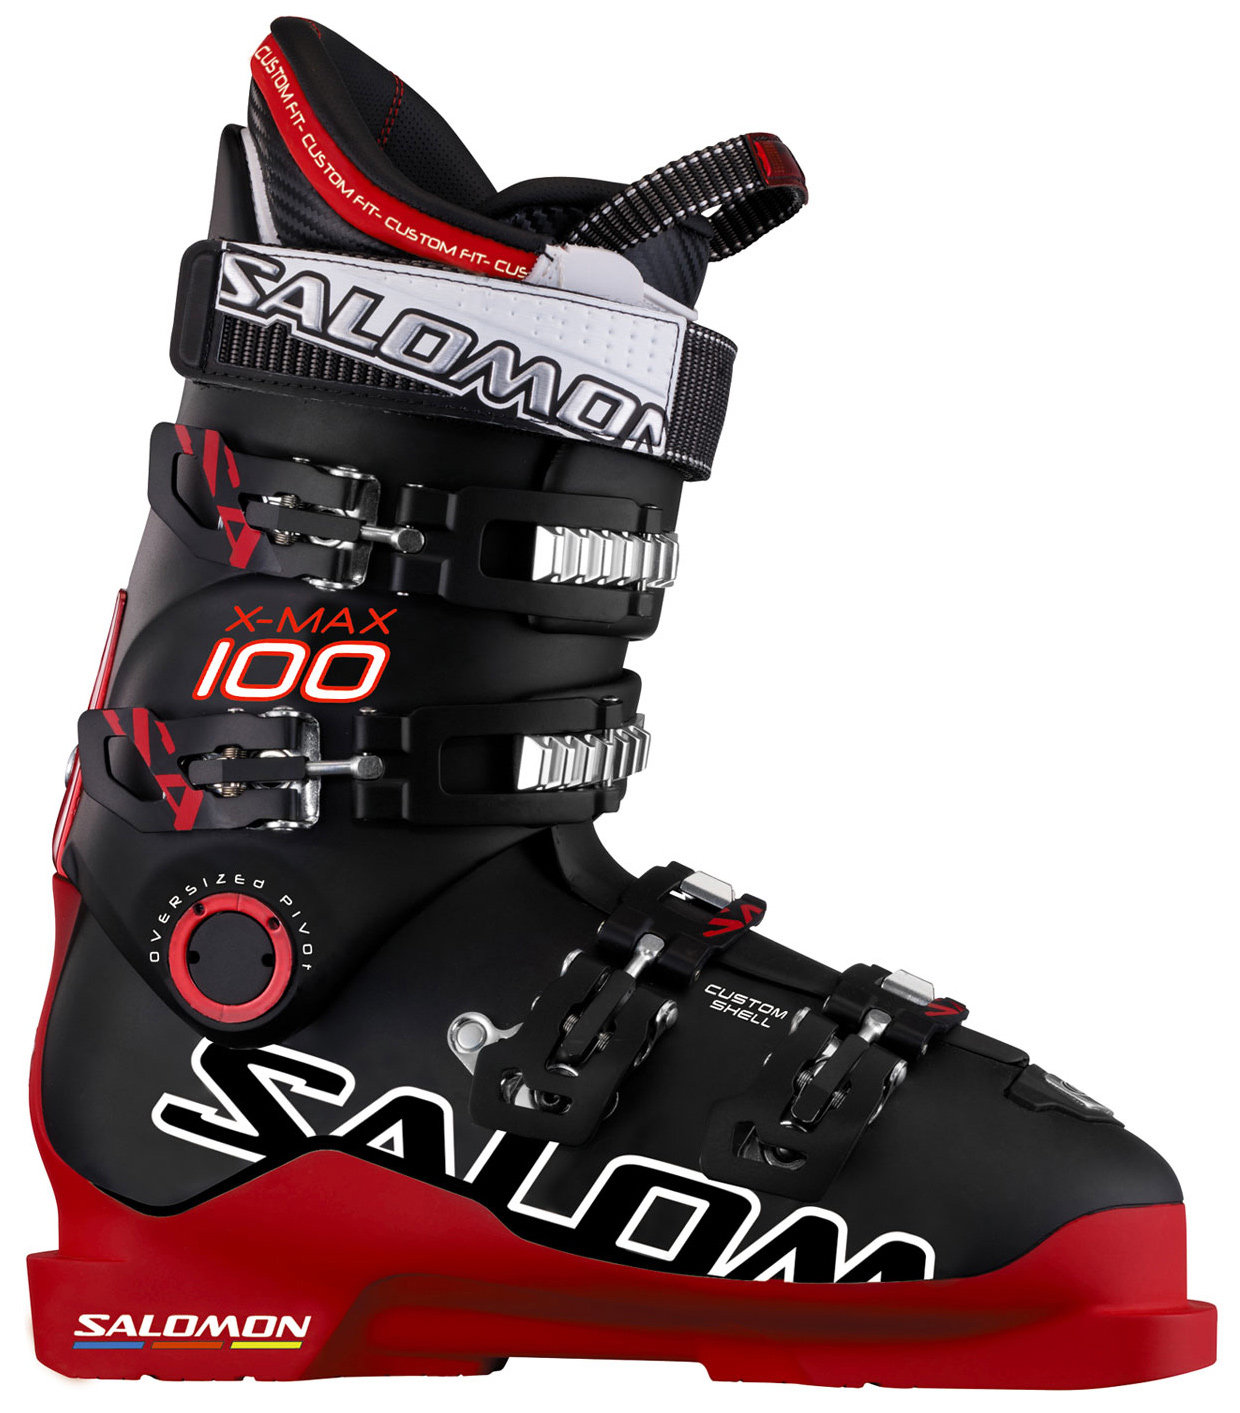 Ski Key Features of the Salomon X Max 100 Ski Boots: Twinframe 360 degree Custom Shell Bi Material Pu Lower Shell Bi-Material Pu Upper Cuff Backbone 1 Screw 24Mm Oversized Pivot 4Mm Integrated Lifter My Customfit Pro Liner + 1 Loop (Rear) - $349.95